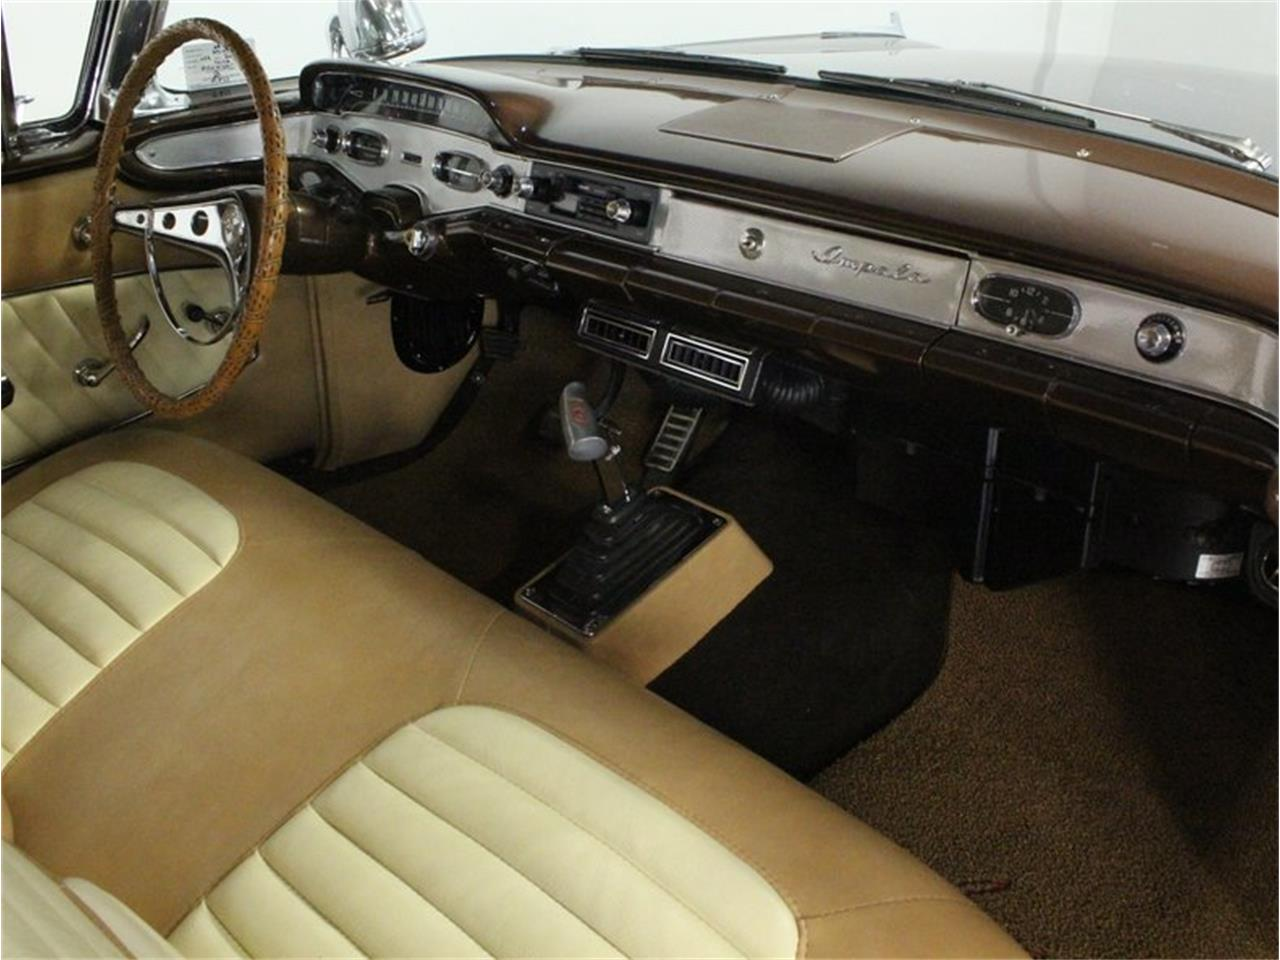 Large Picture of Classic '58 Chevrolet Impala located in Texas Offered by Streetside Classics - Dallas / Fort Worth - HX8B